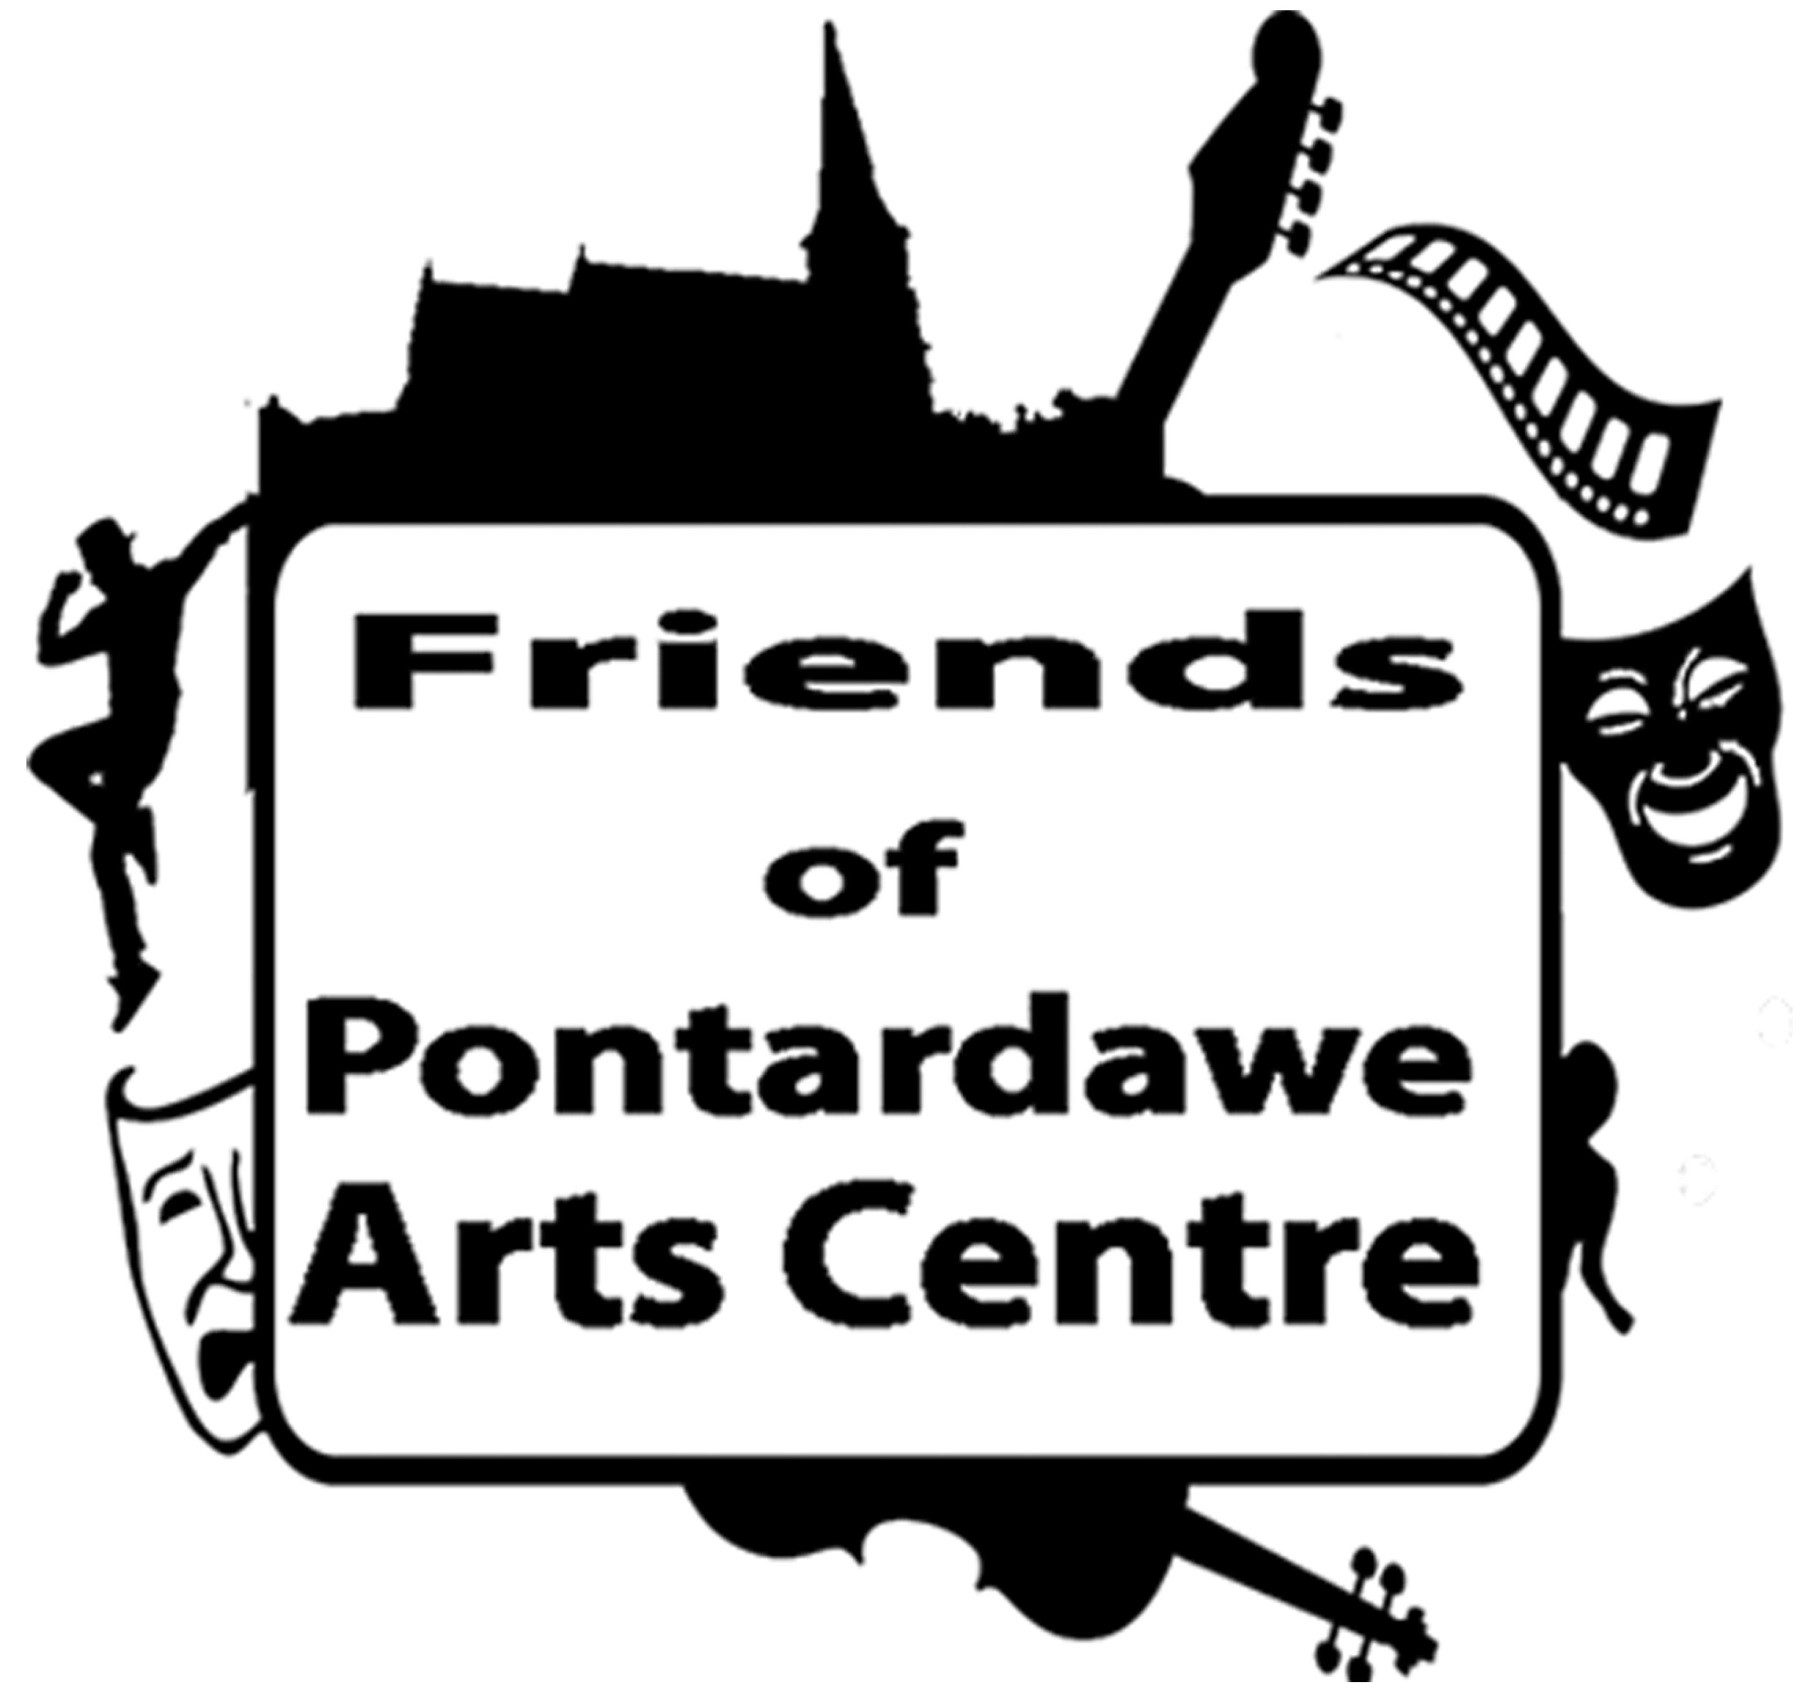 Friends of Pontardawe Arts Centre